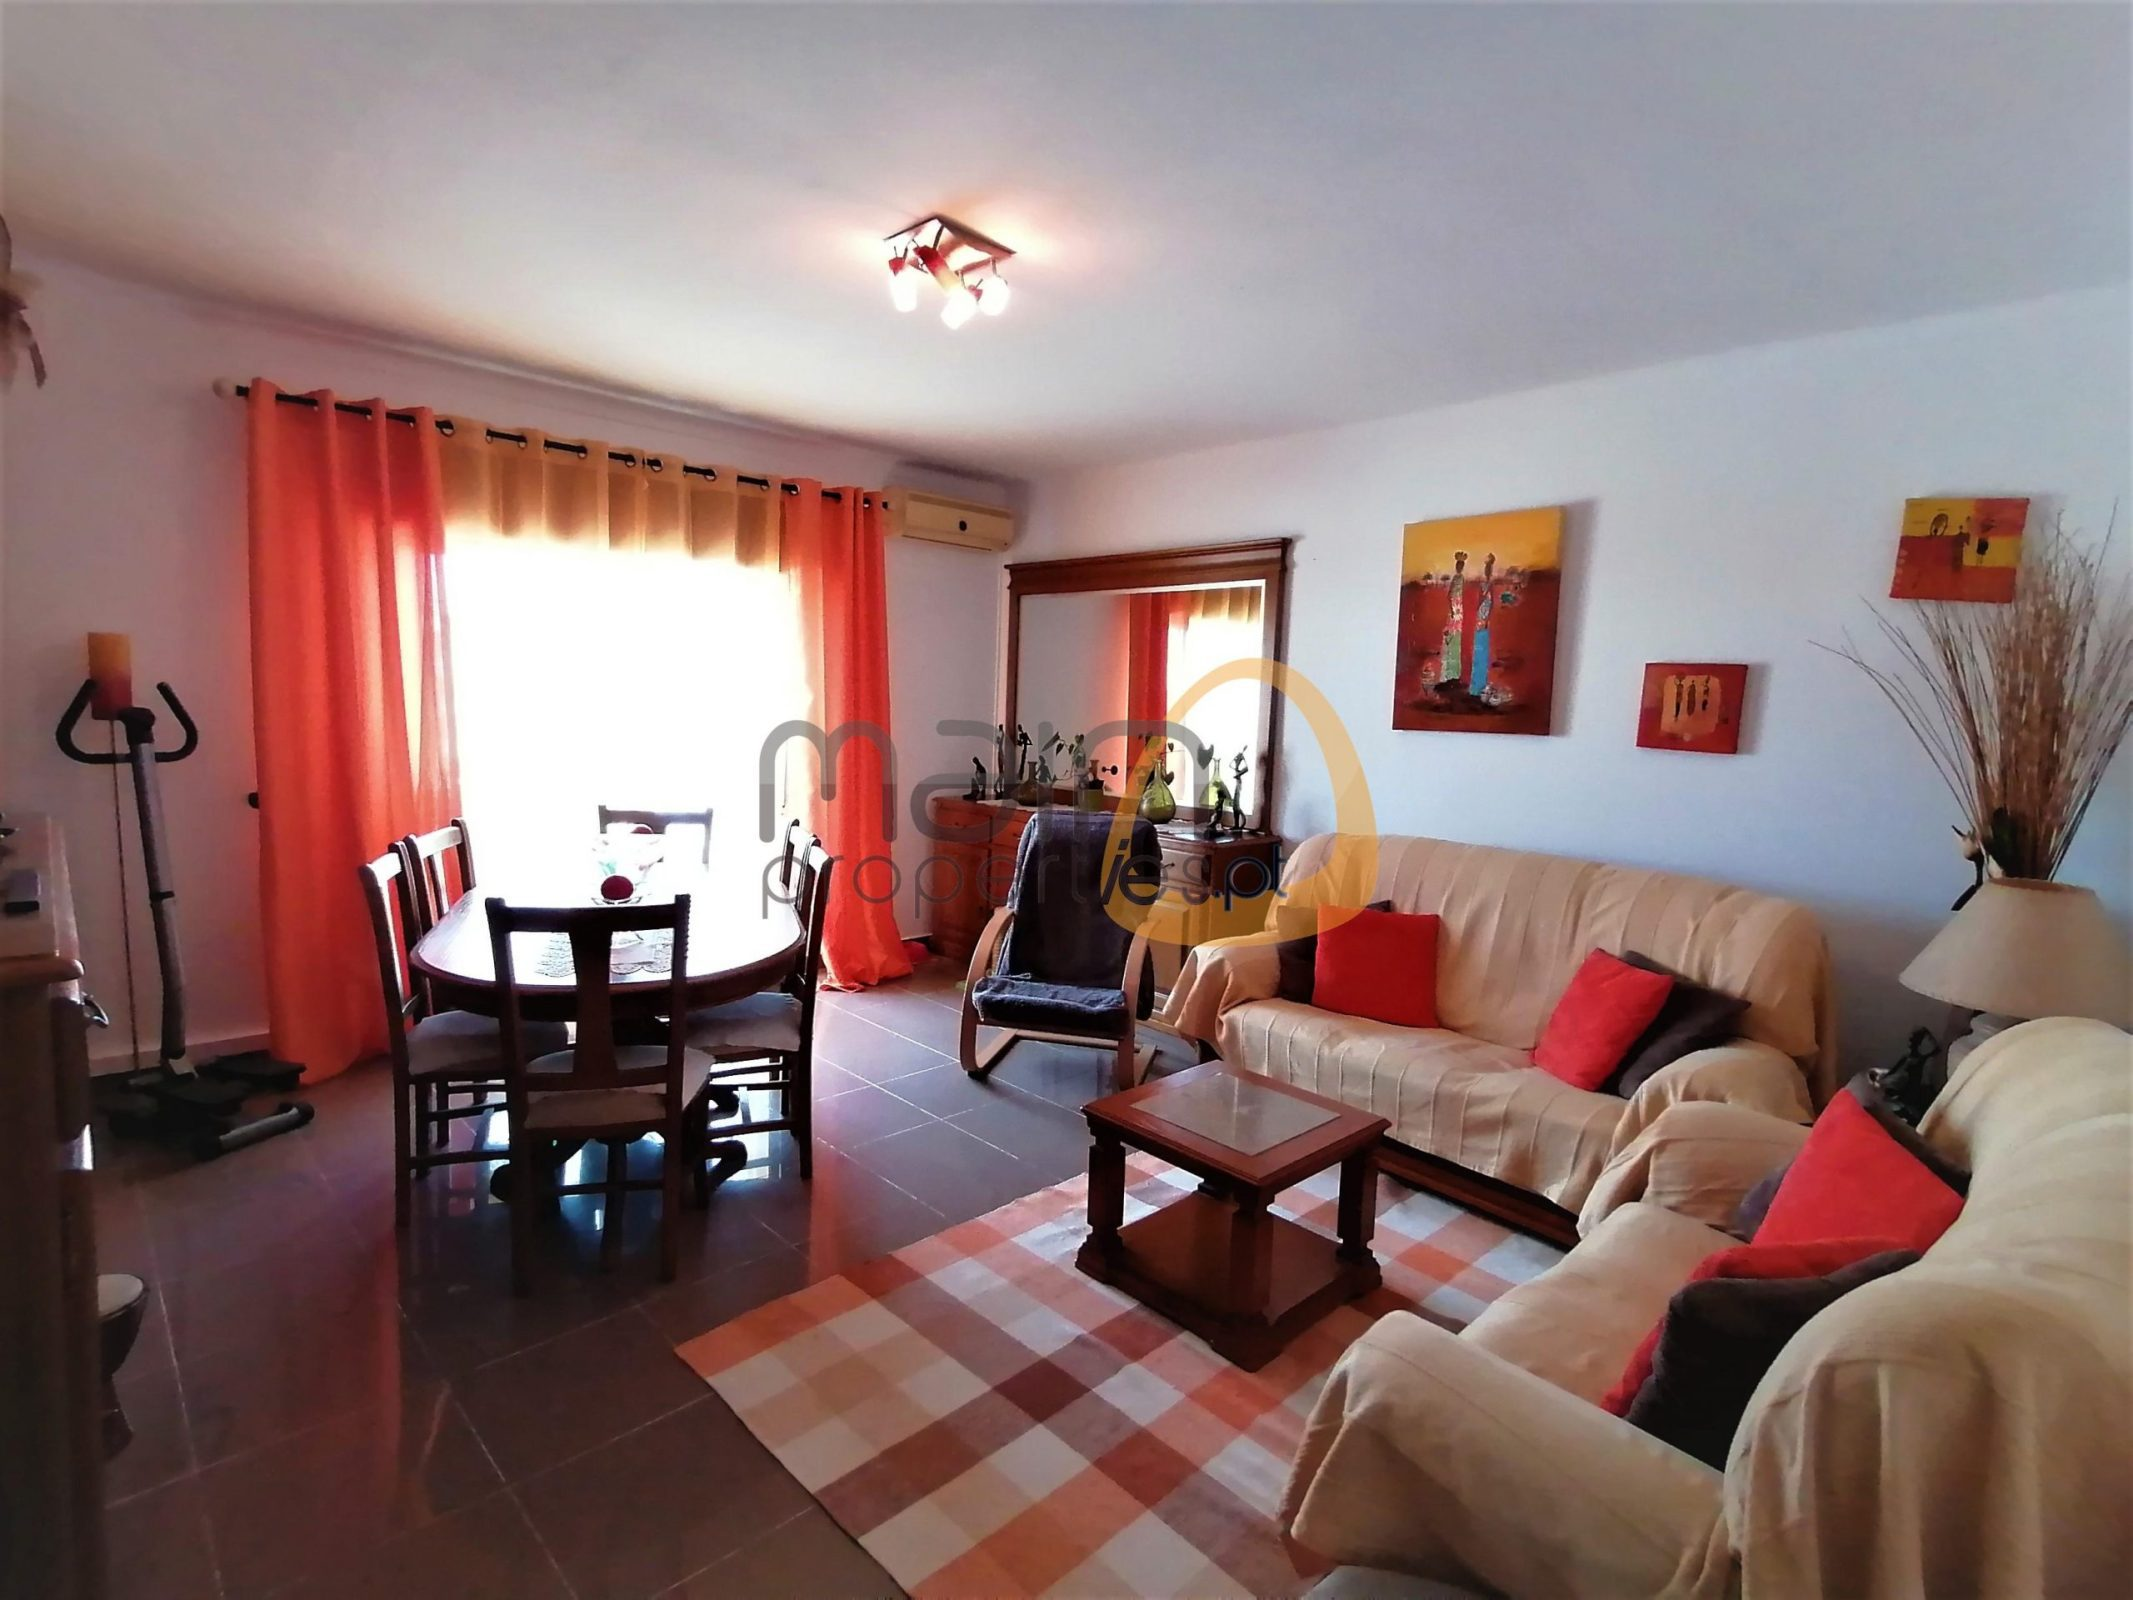 Spacious 3 bedroom apartment in Olhão